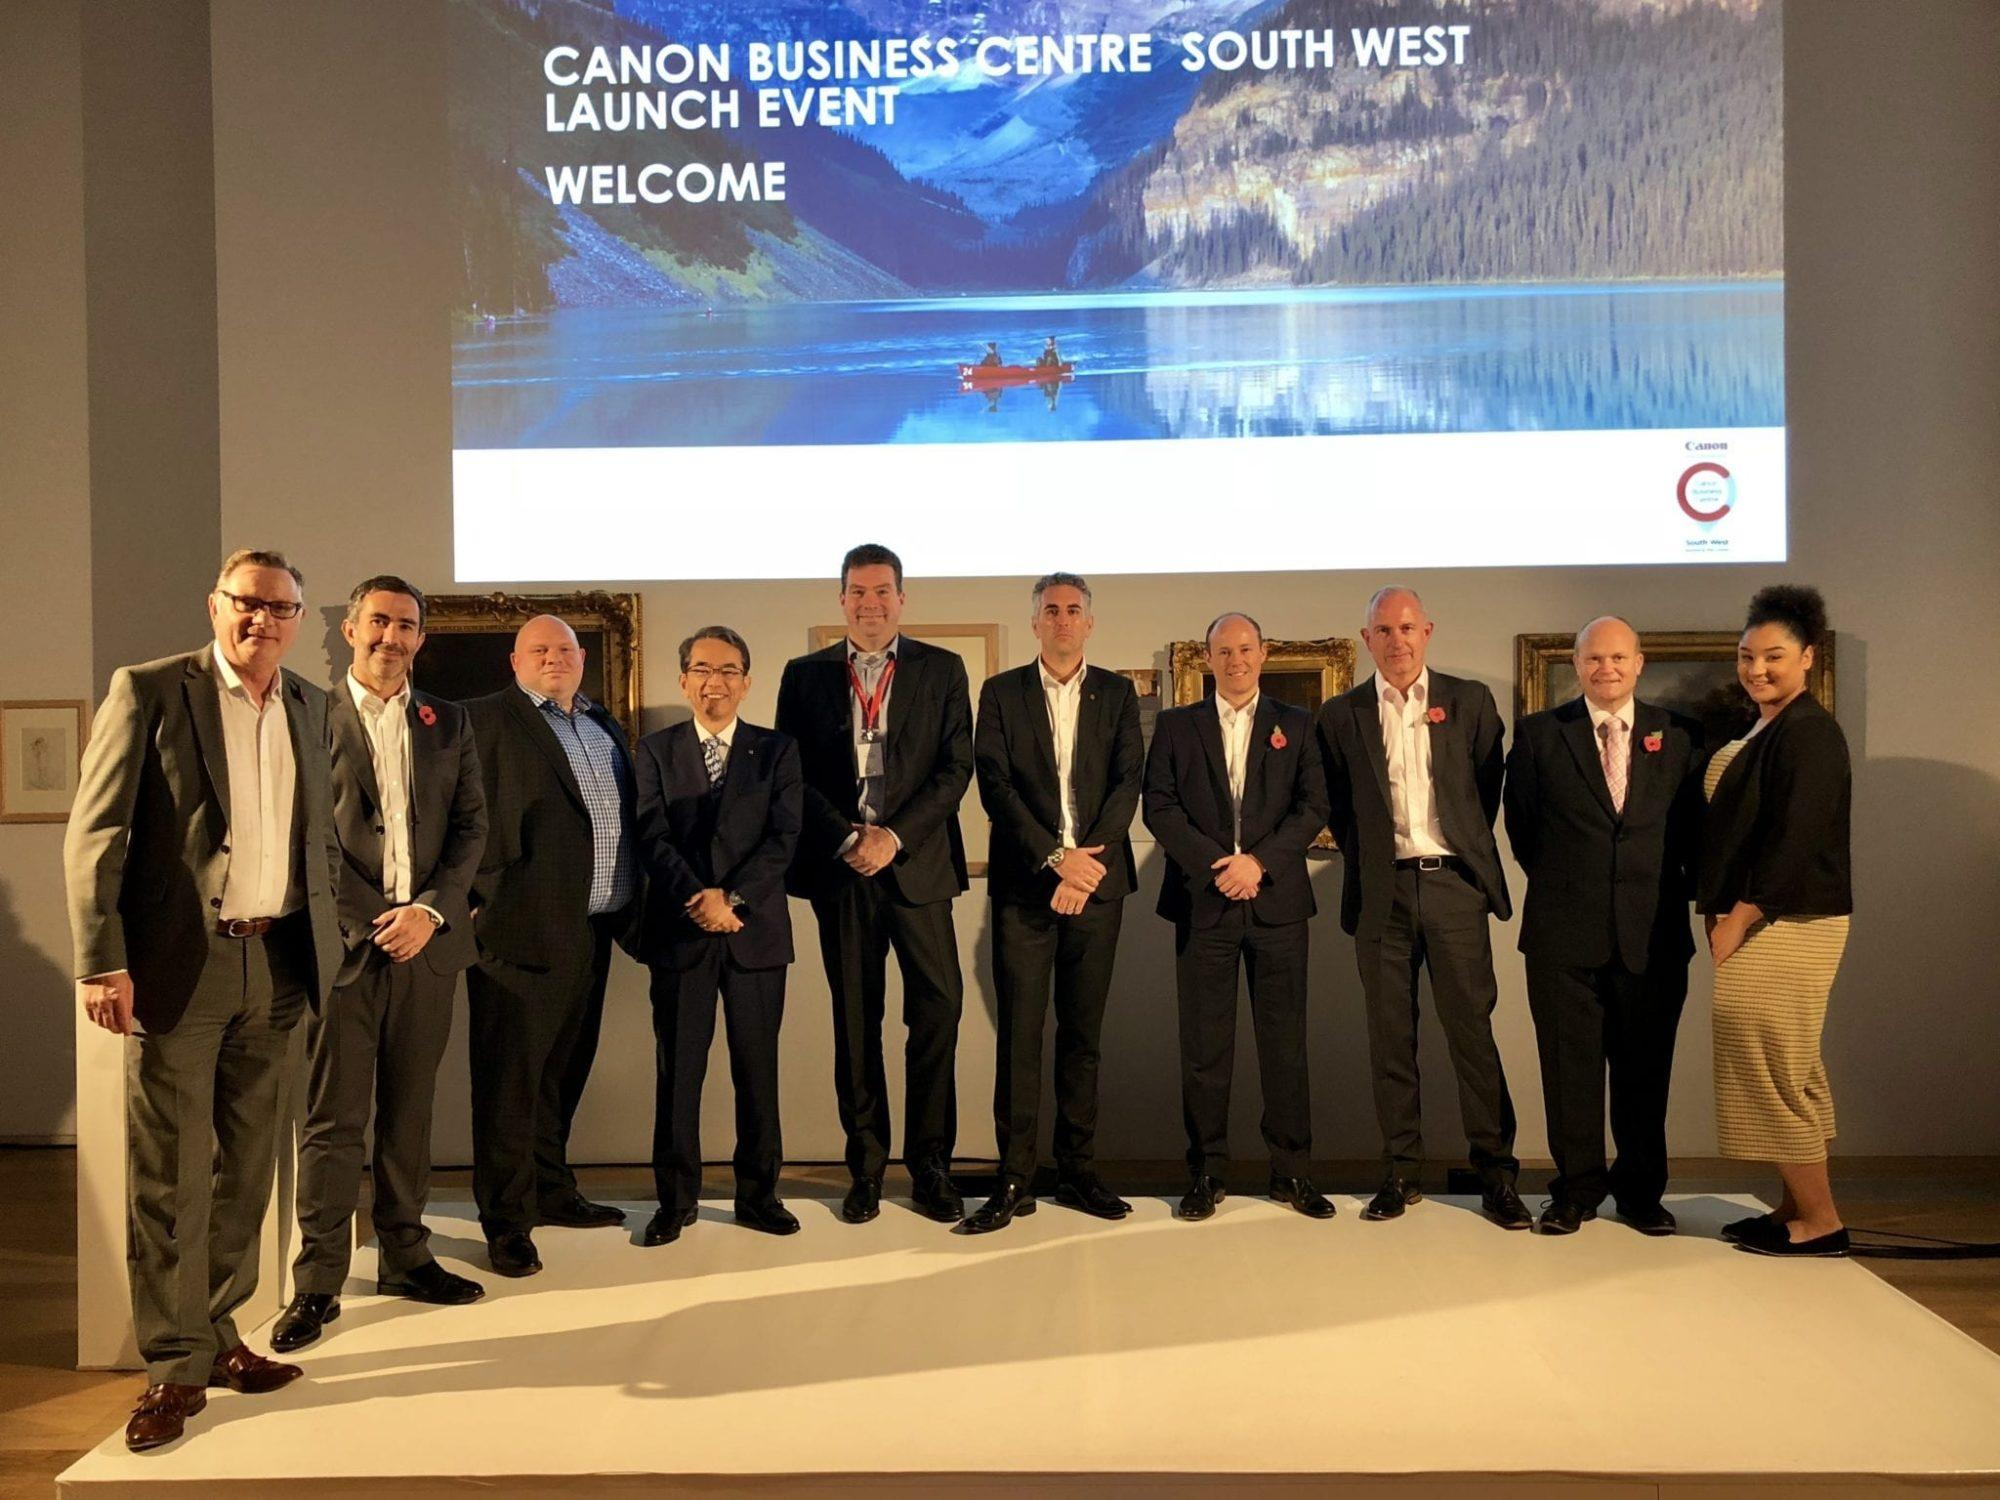 Canon Business Centre SW Launch Event